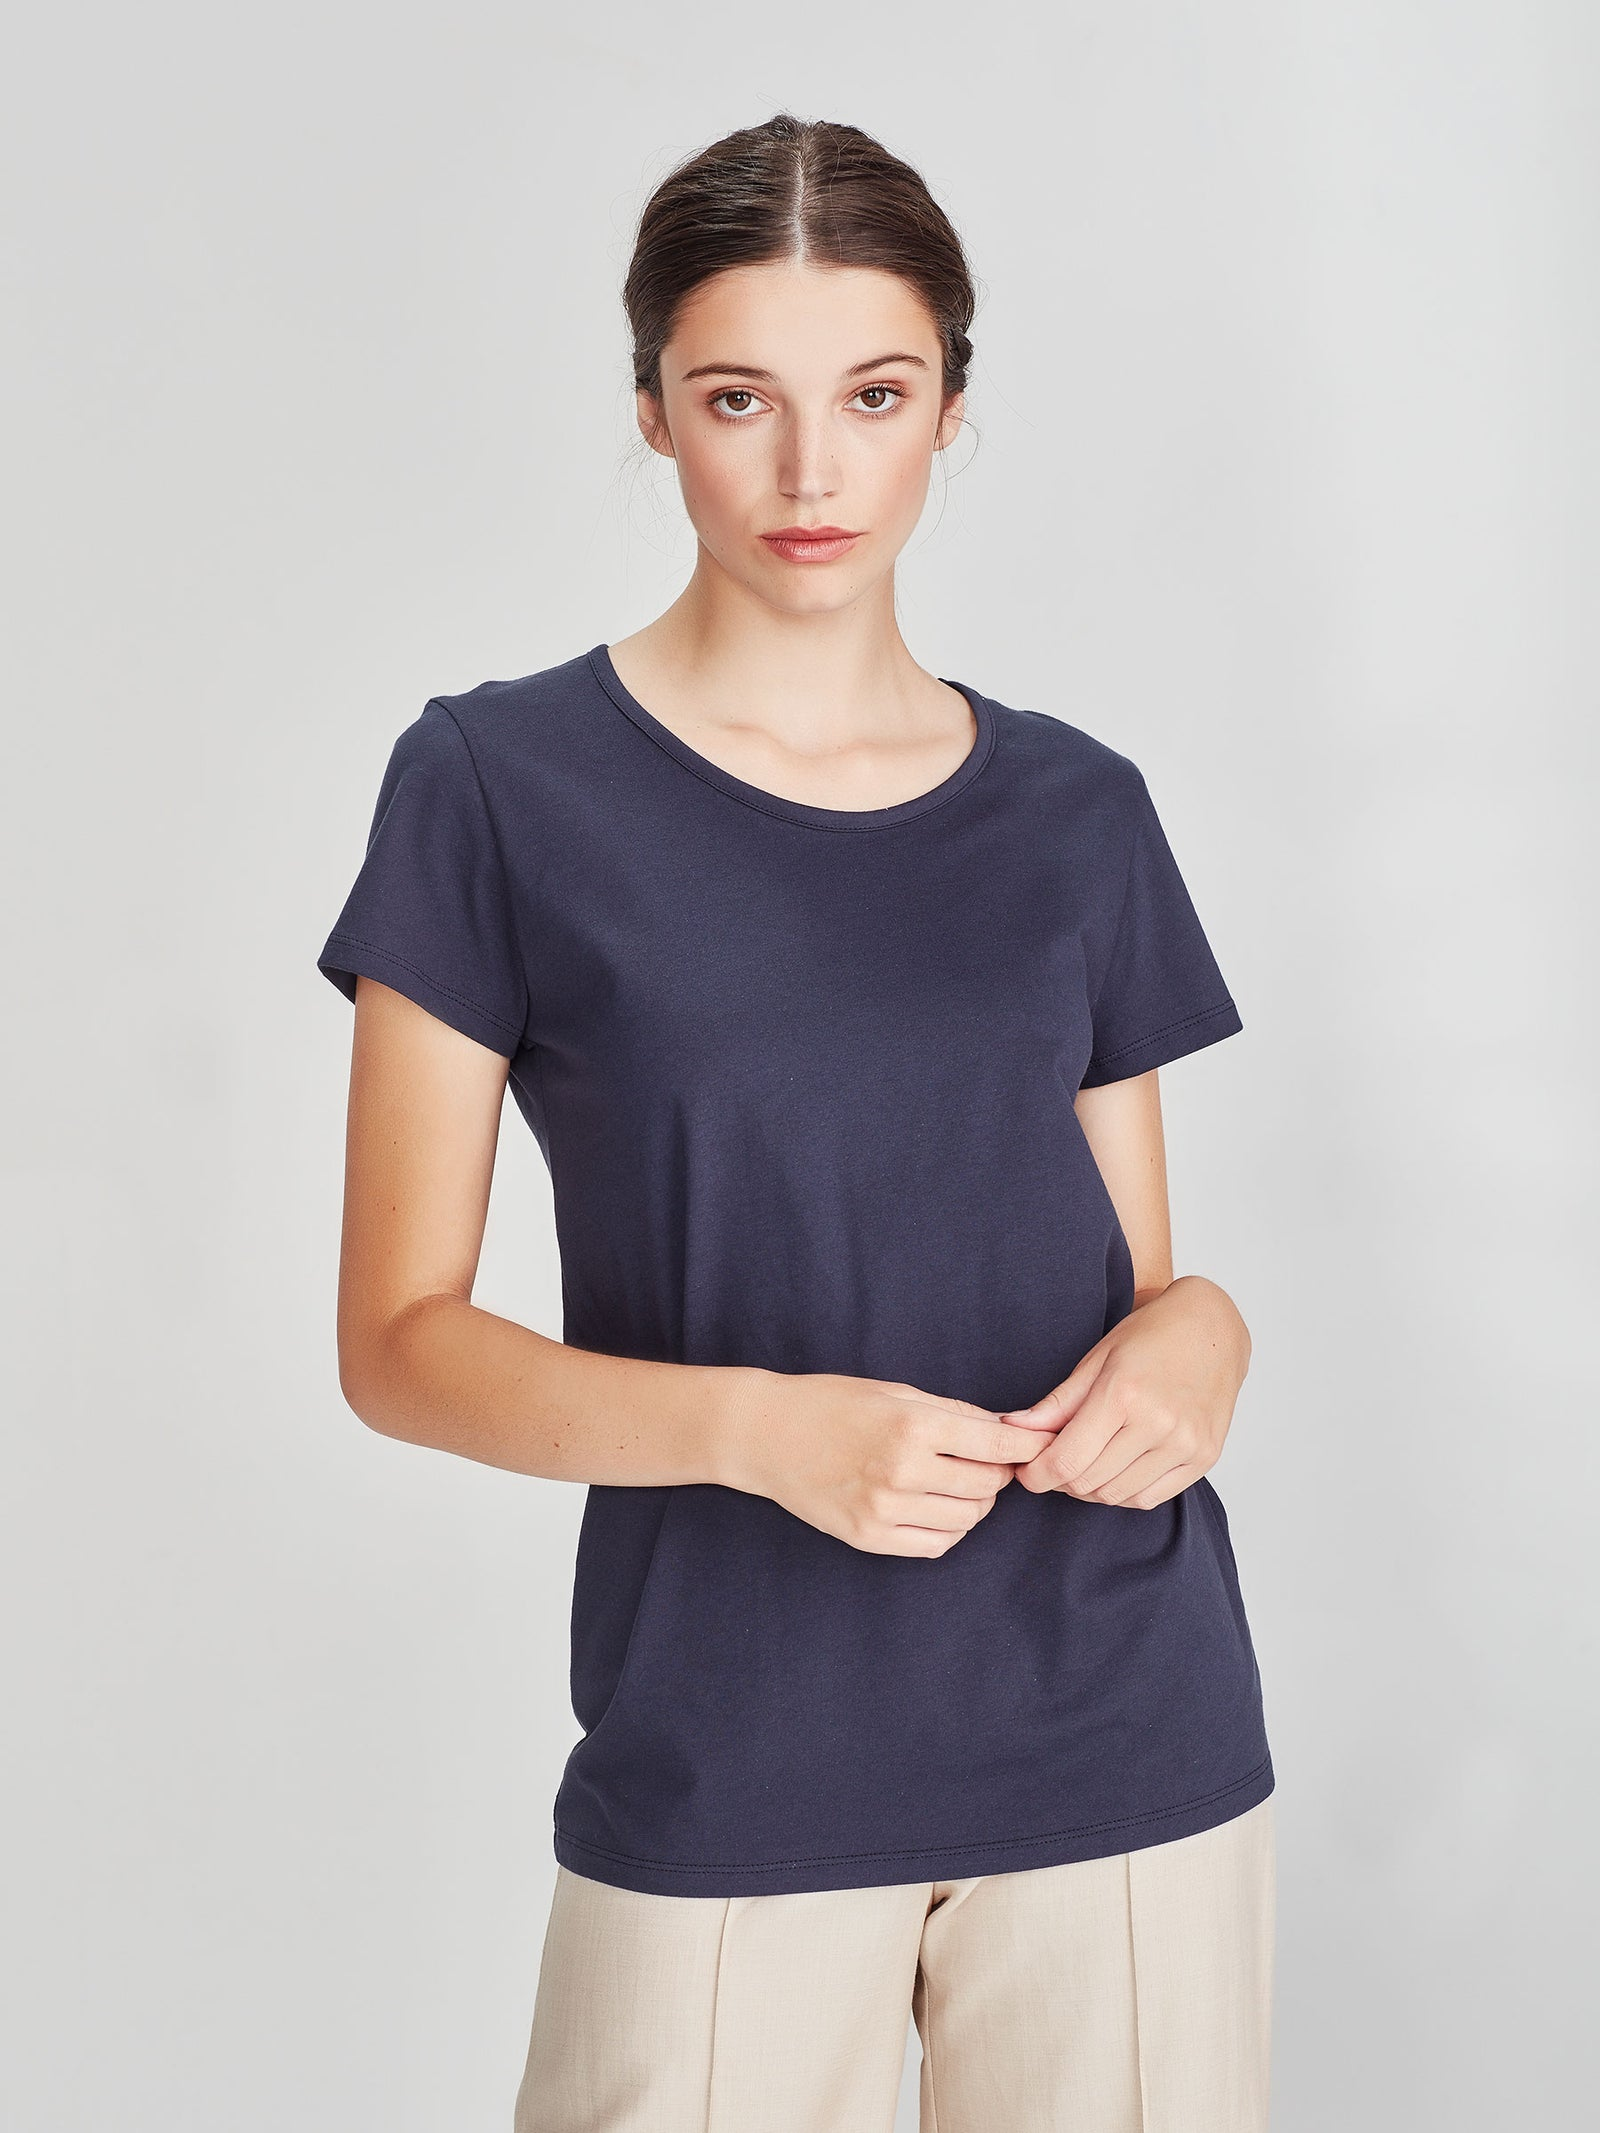 Dean T (Soft Cotton Jersey) Navy